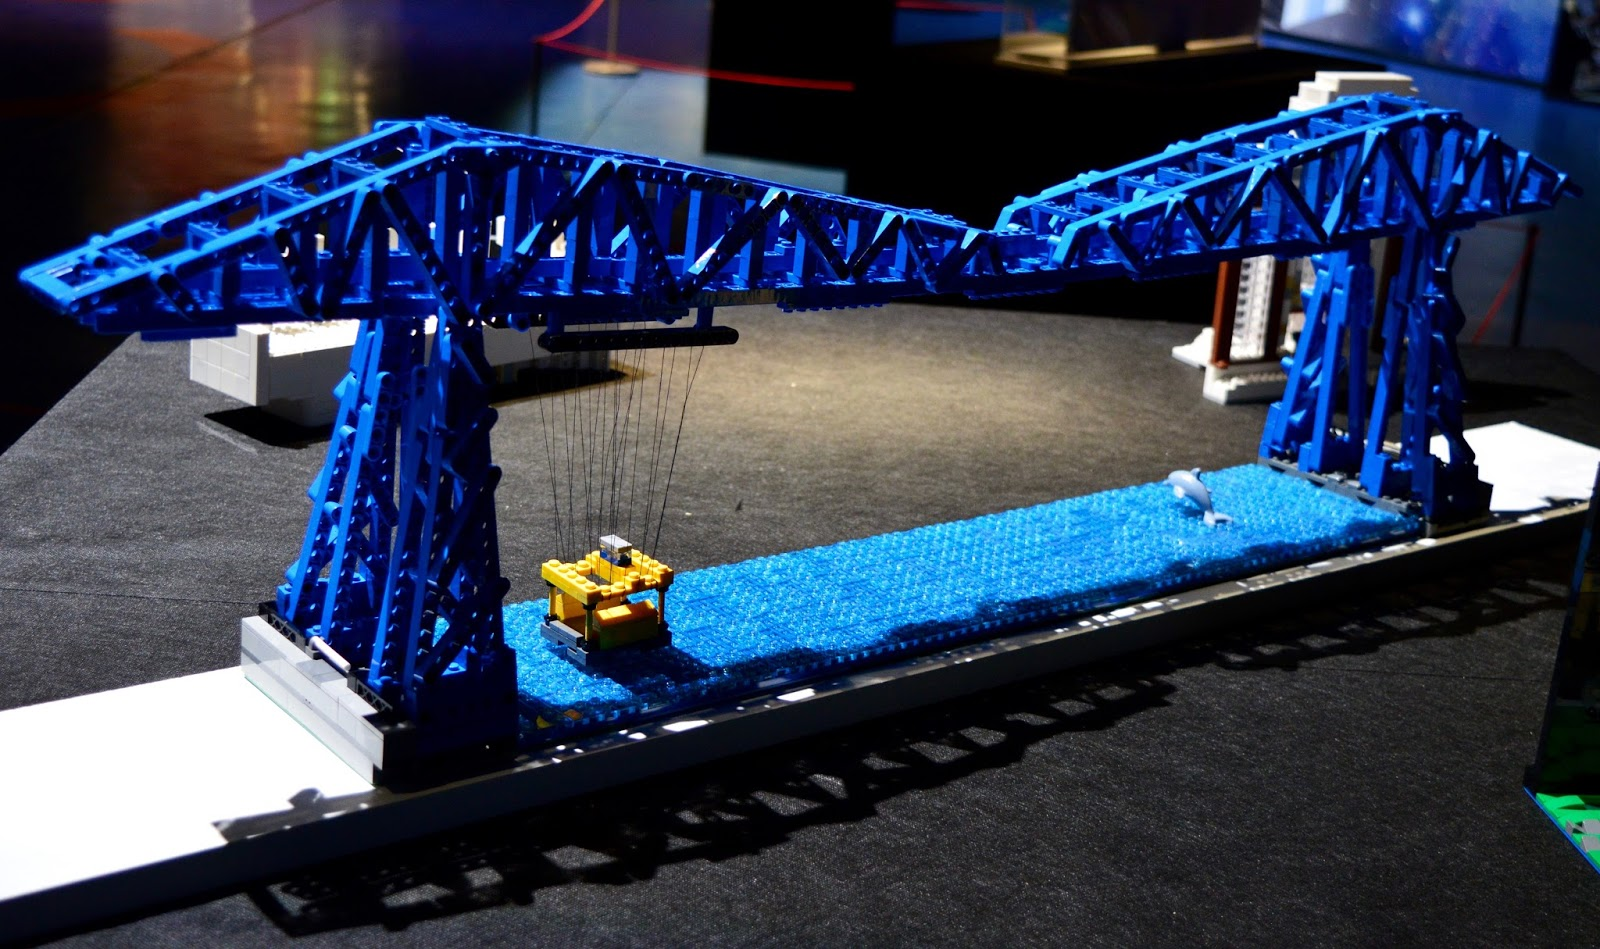 Brick History & North East Landmarks | New Lego Exhibitions at Life Science Centre, Newcastle | A Review - A Lego Transporter Bridge